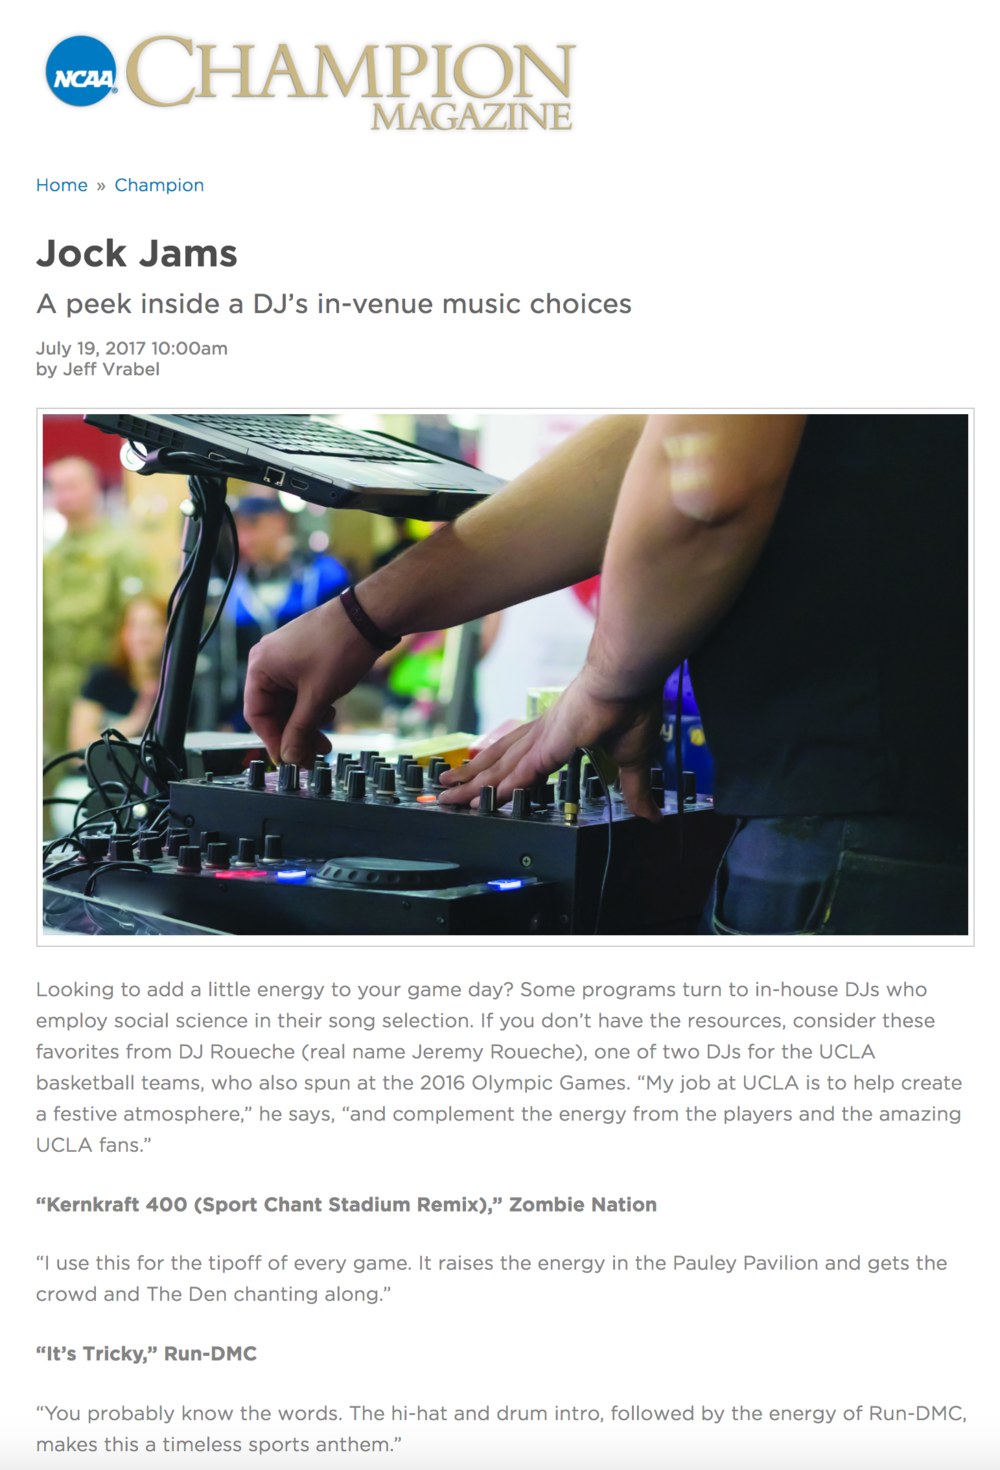 A peek inside a DJ's in-venue music choices - NCAA Champion Magazine | July 19, 2017